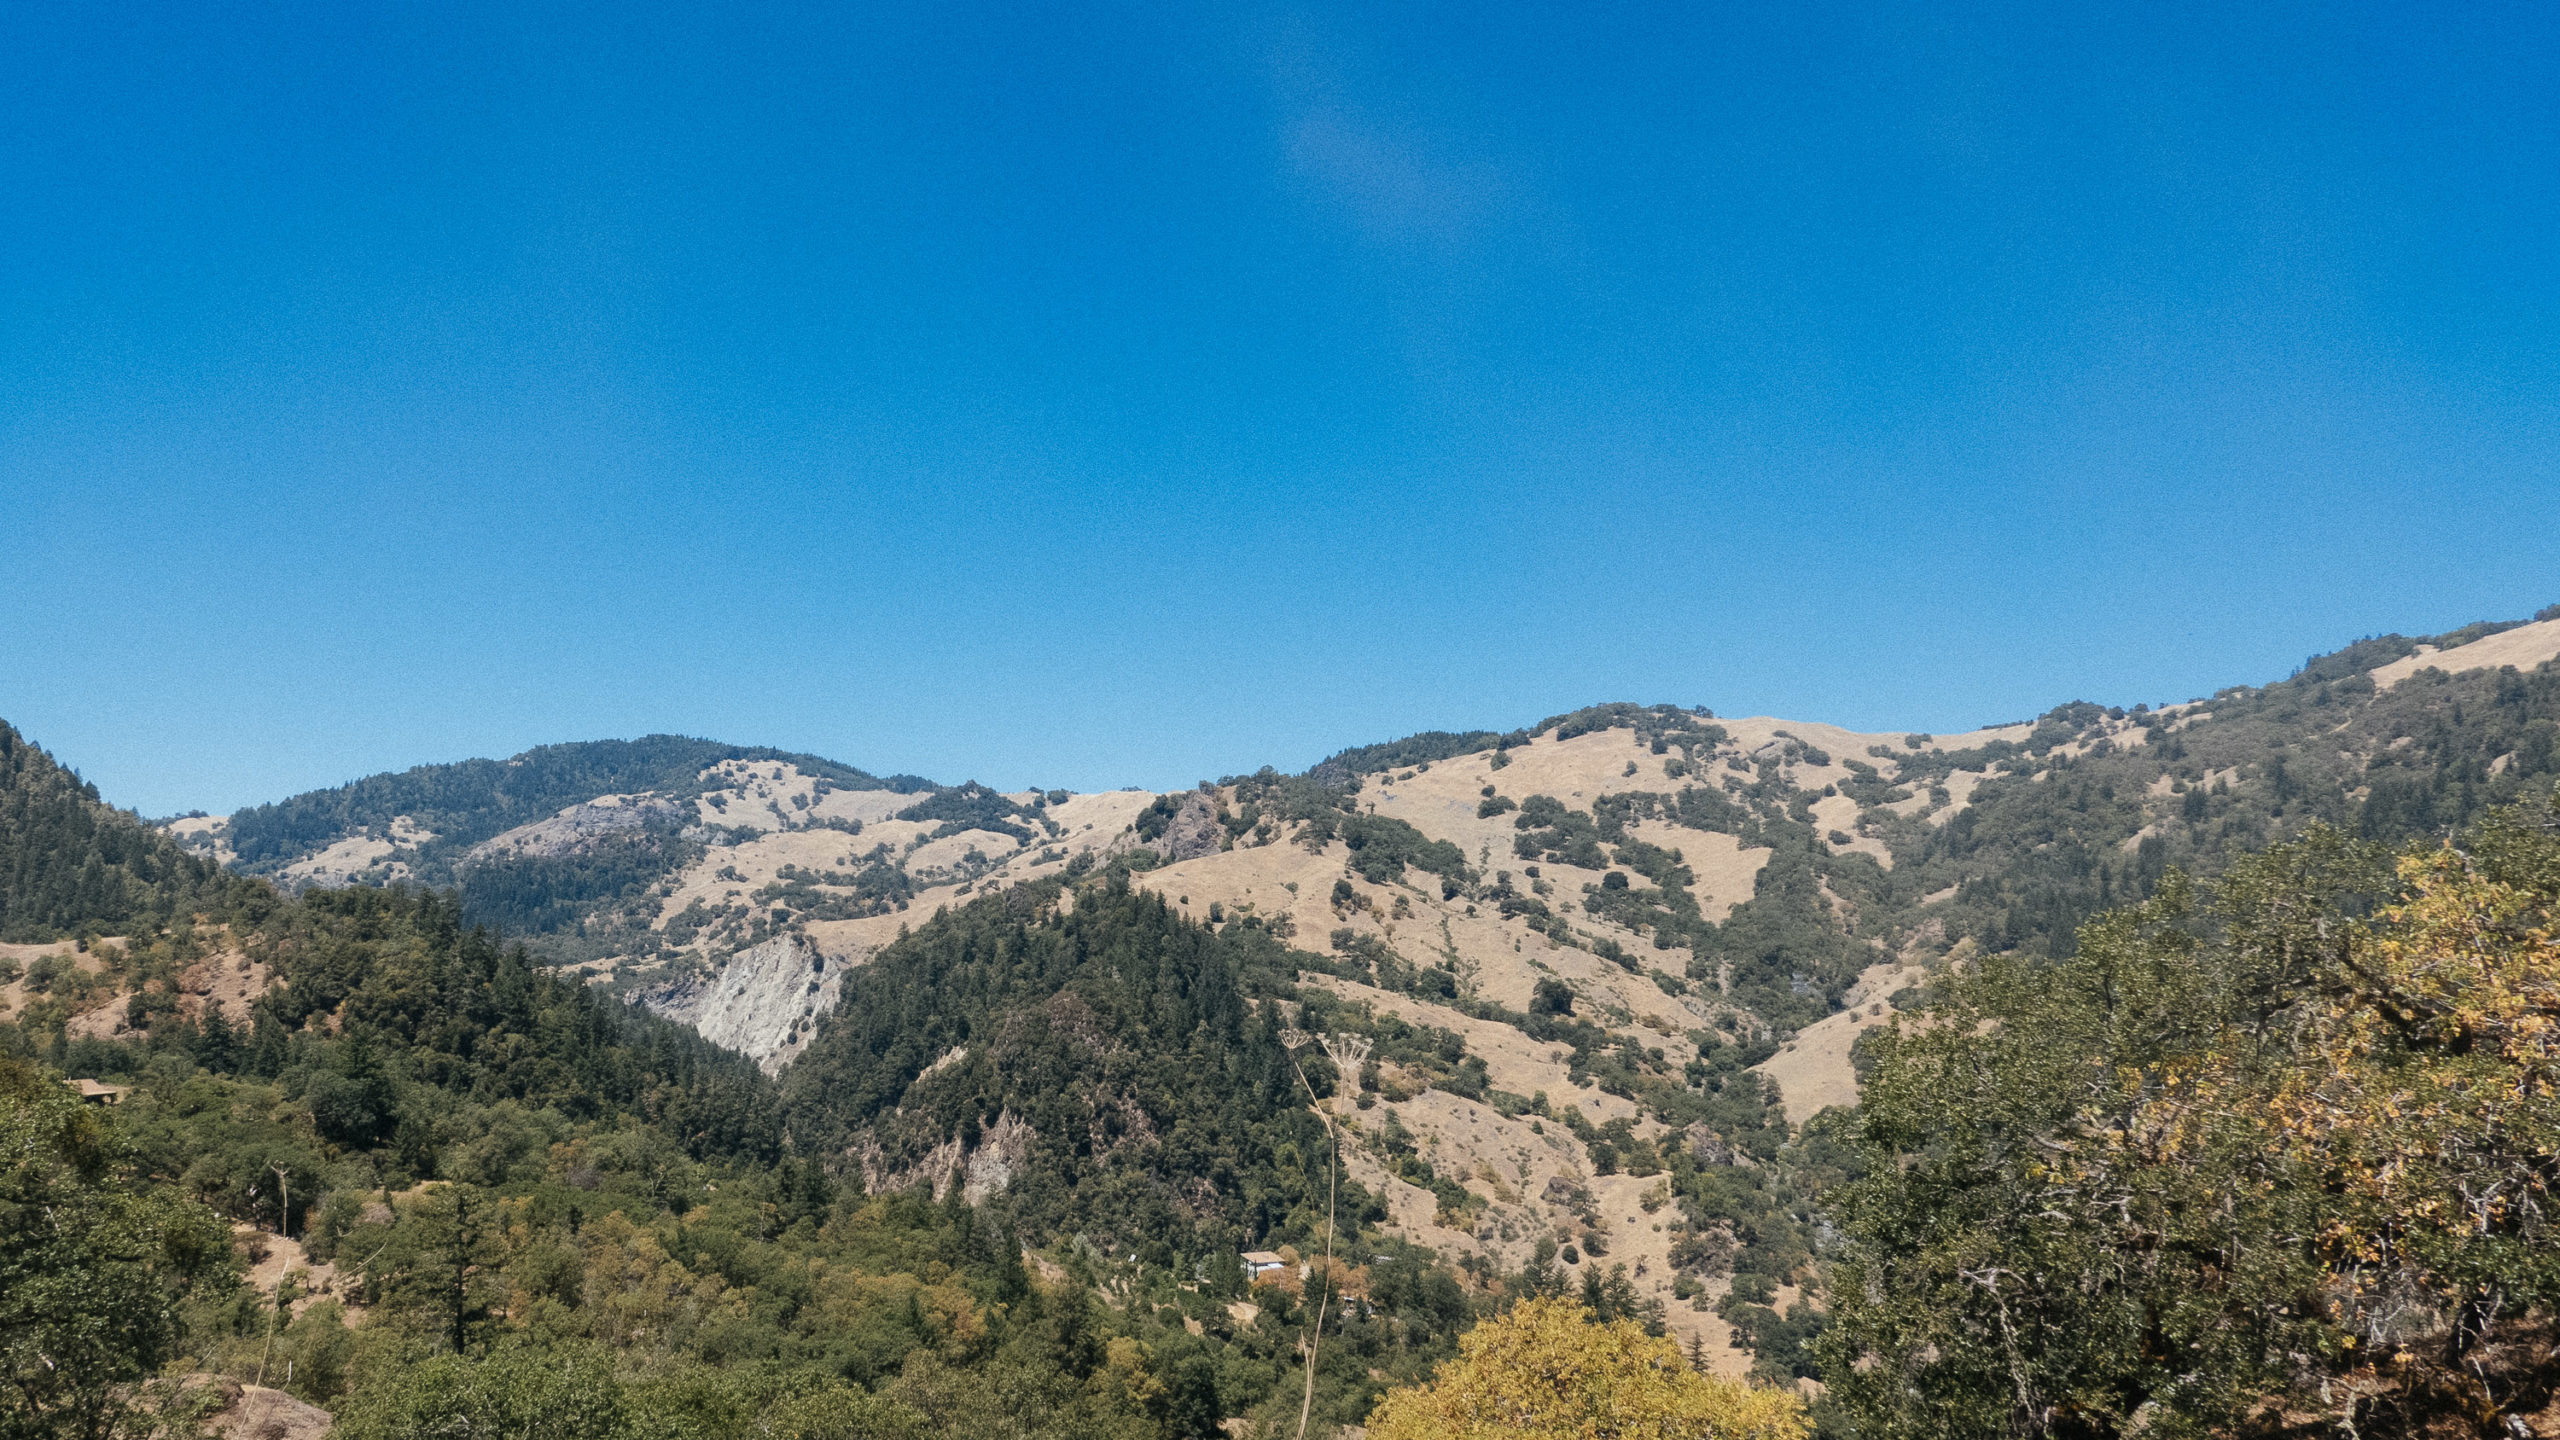 Low lying mountains in California